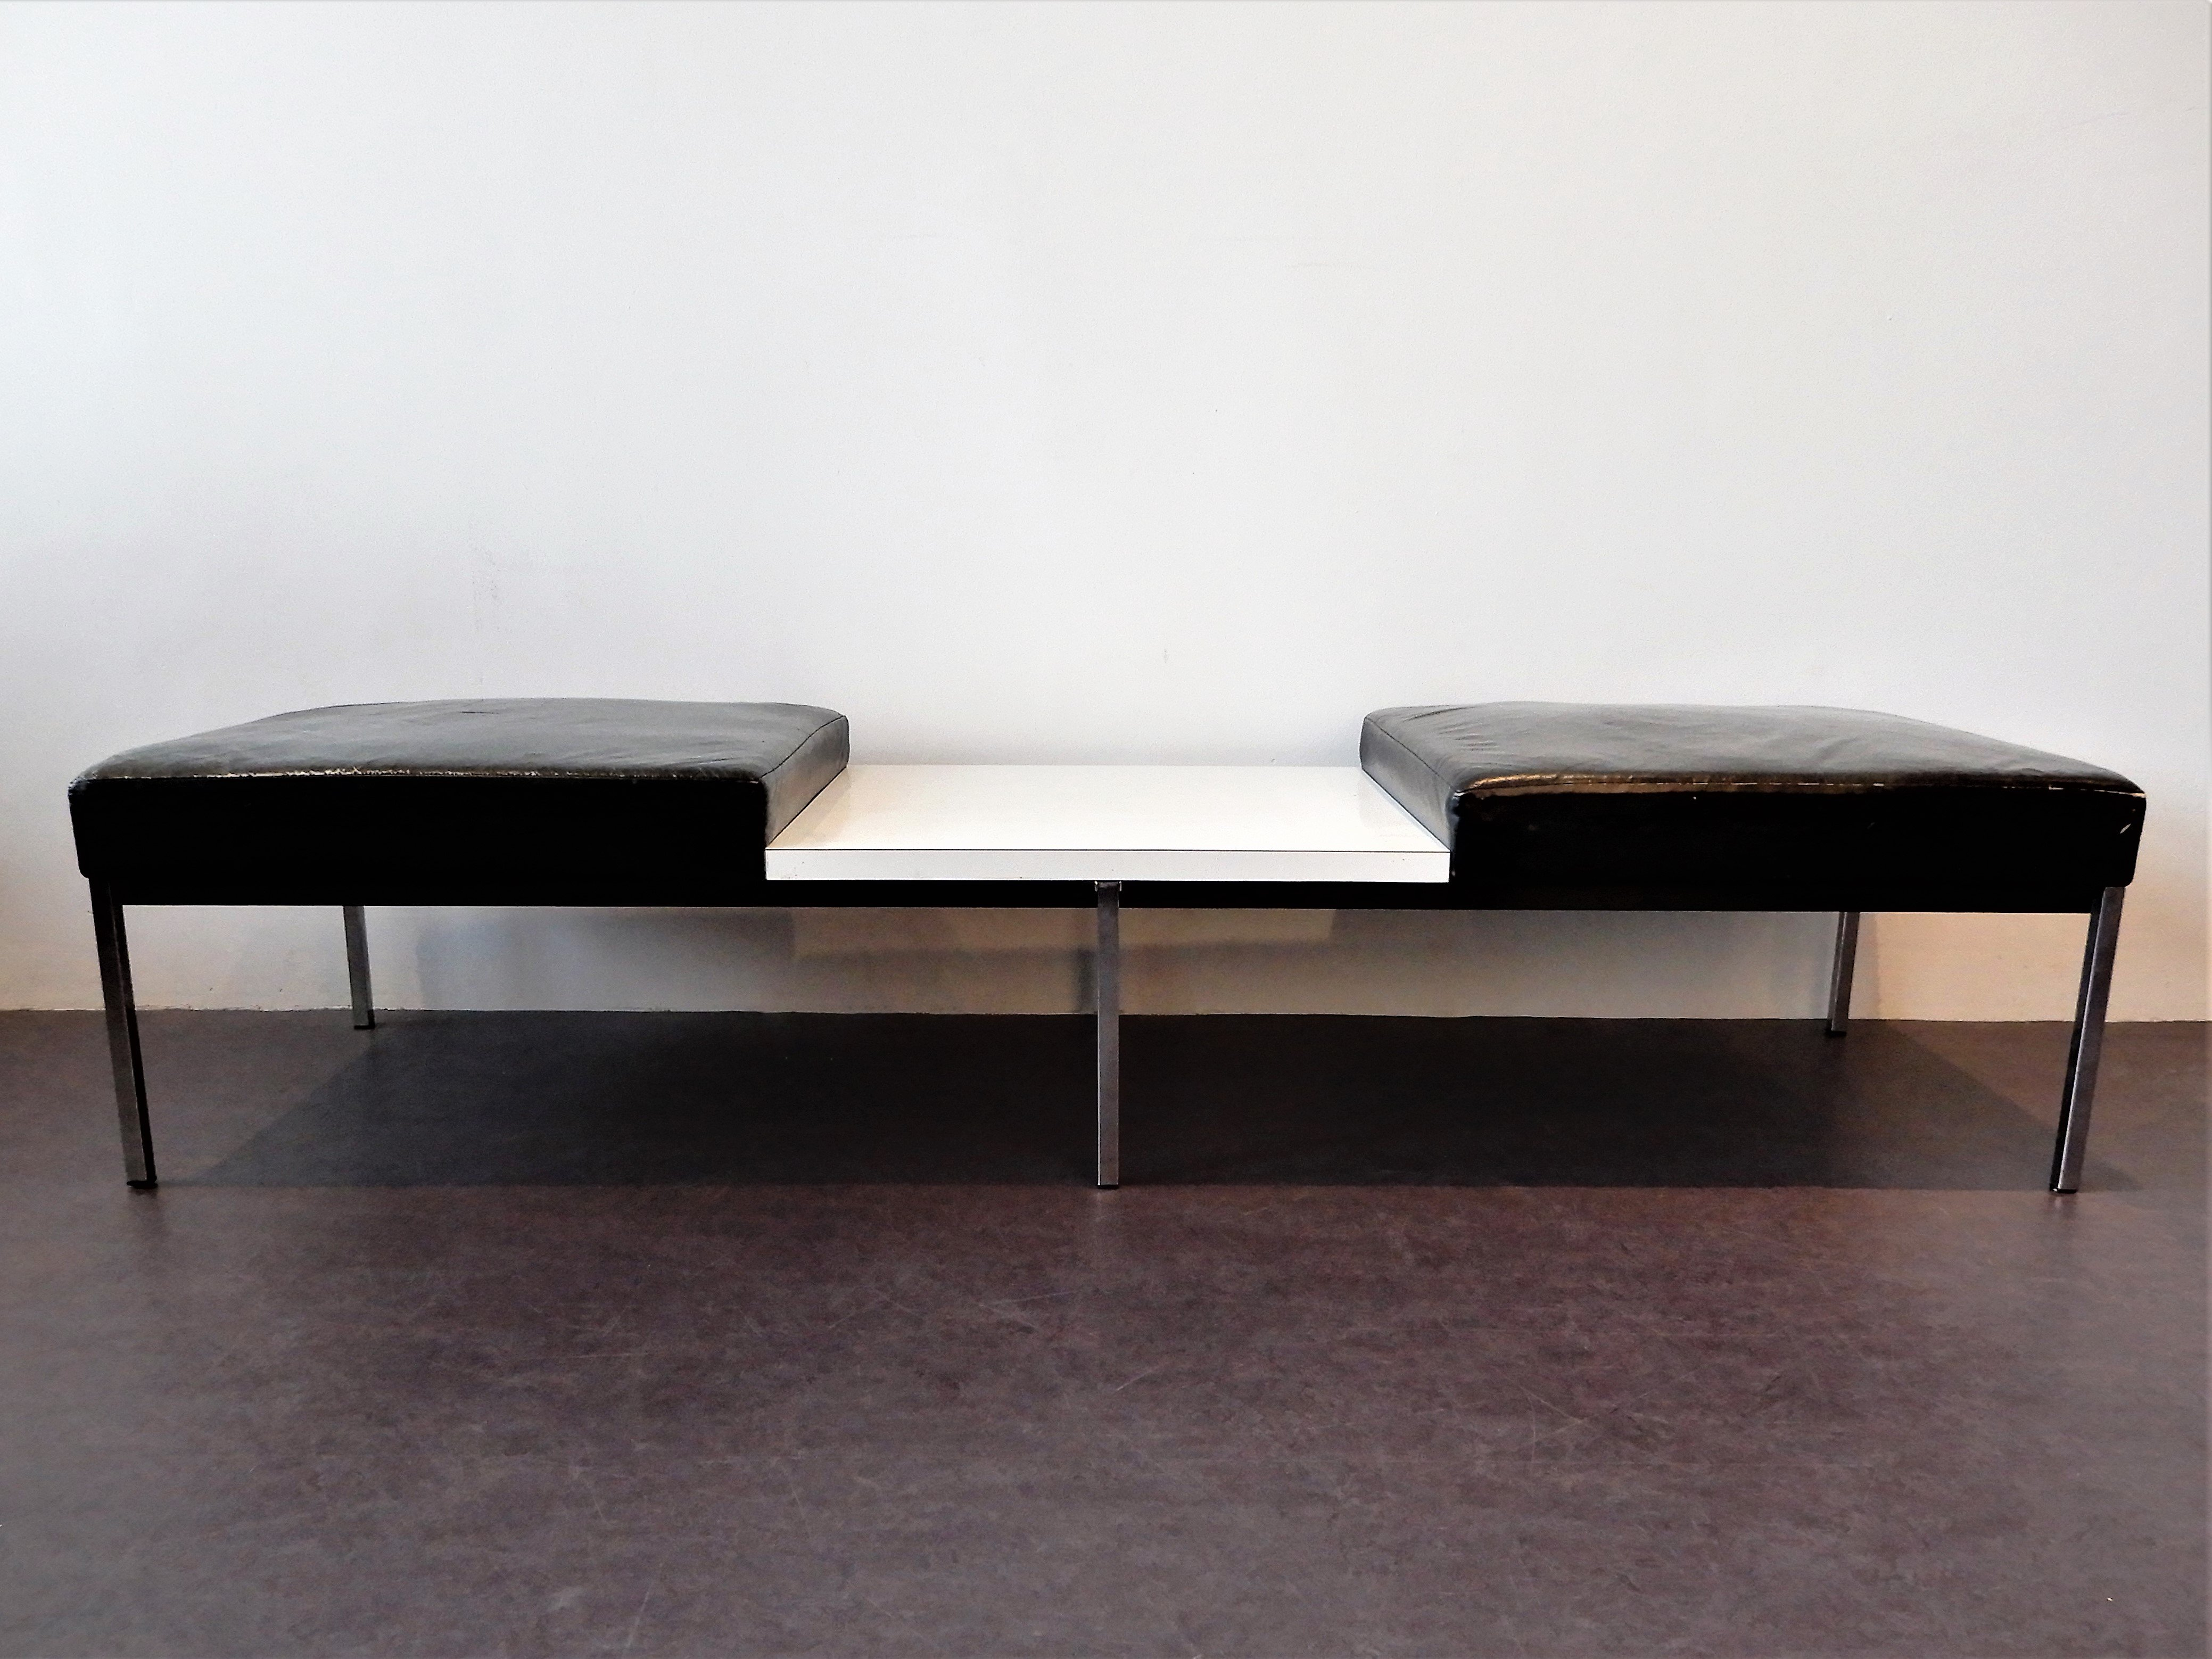 Amazing 2 X Black Leather Bench With White Laminated Table By Thonet 1960S Machost Co Dining Chair Design Ideas Machostcouk